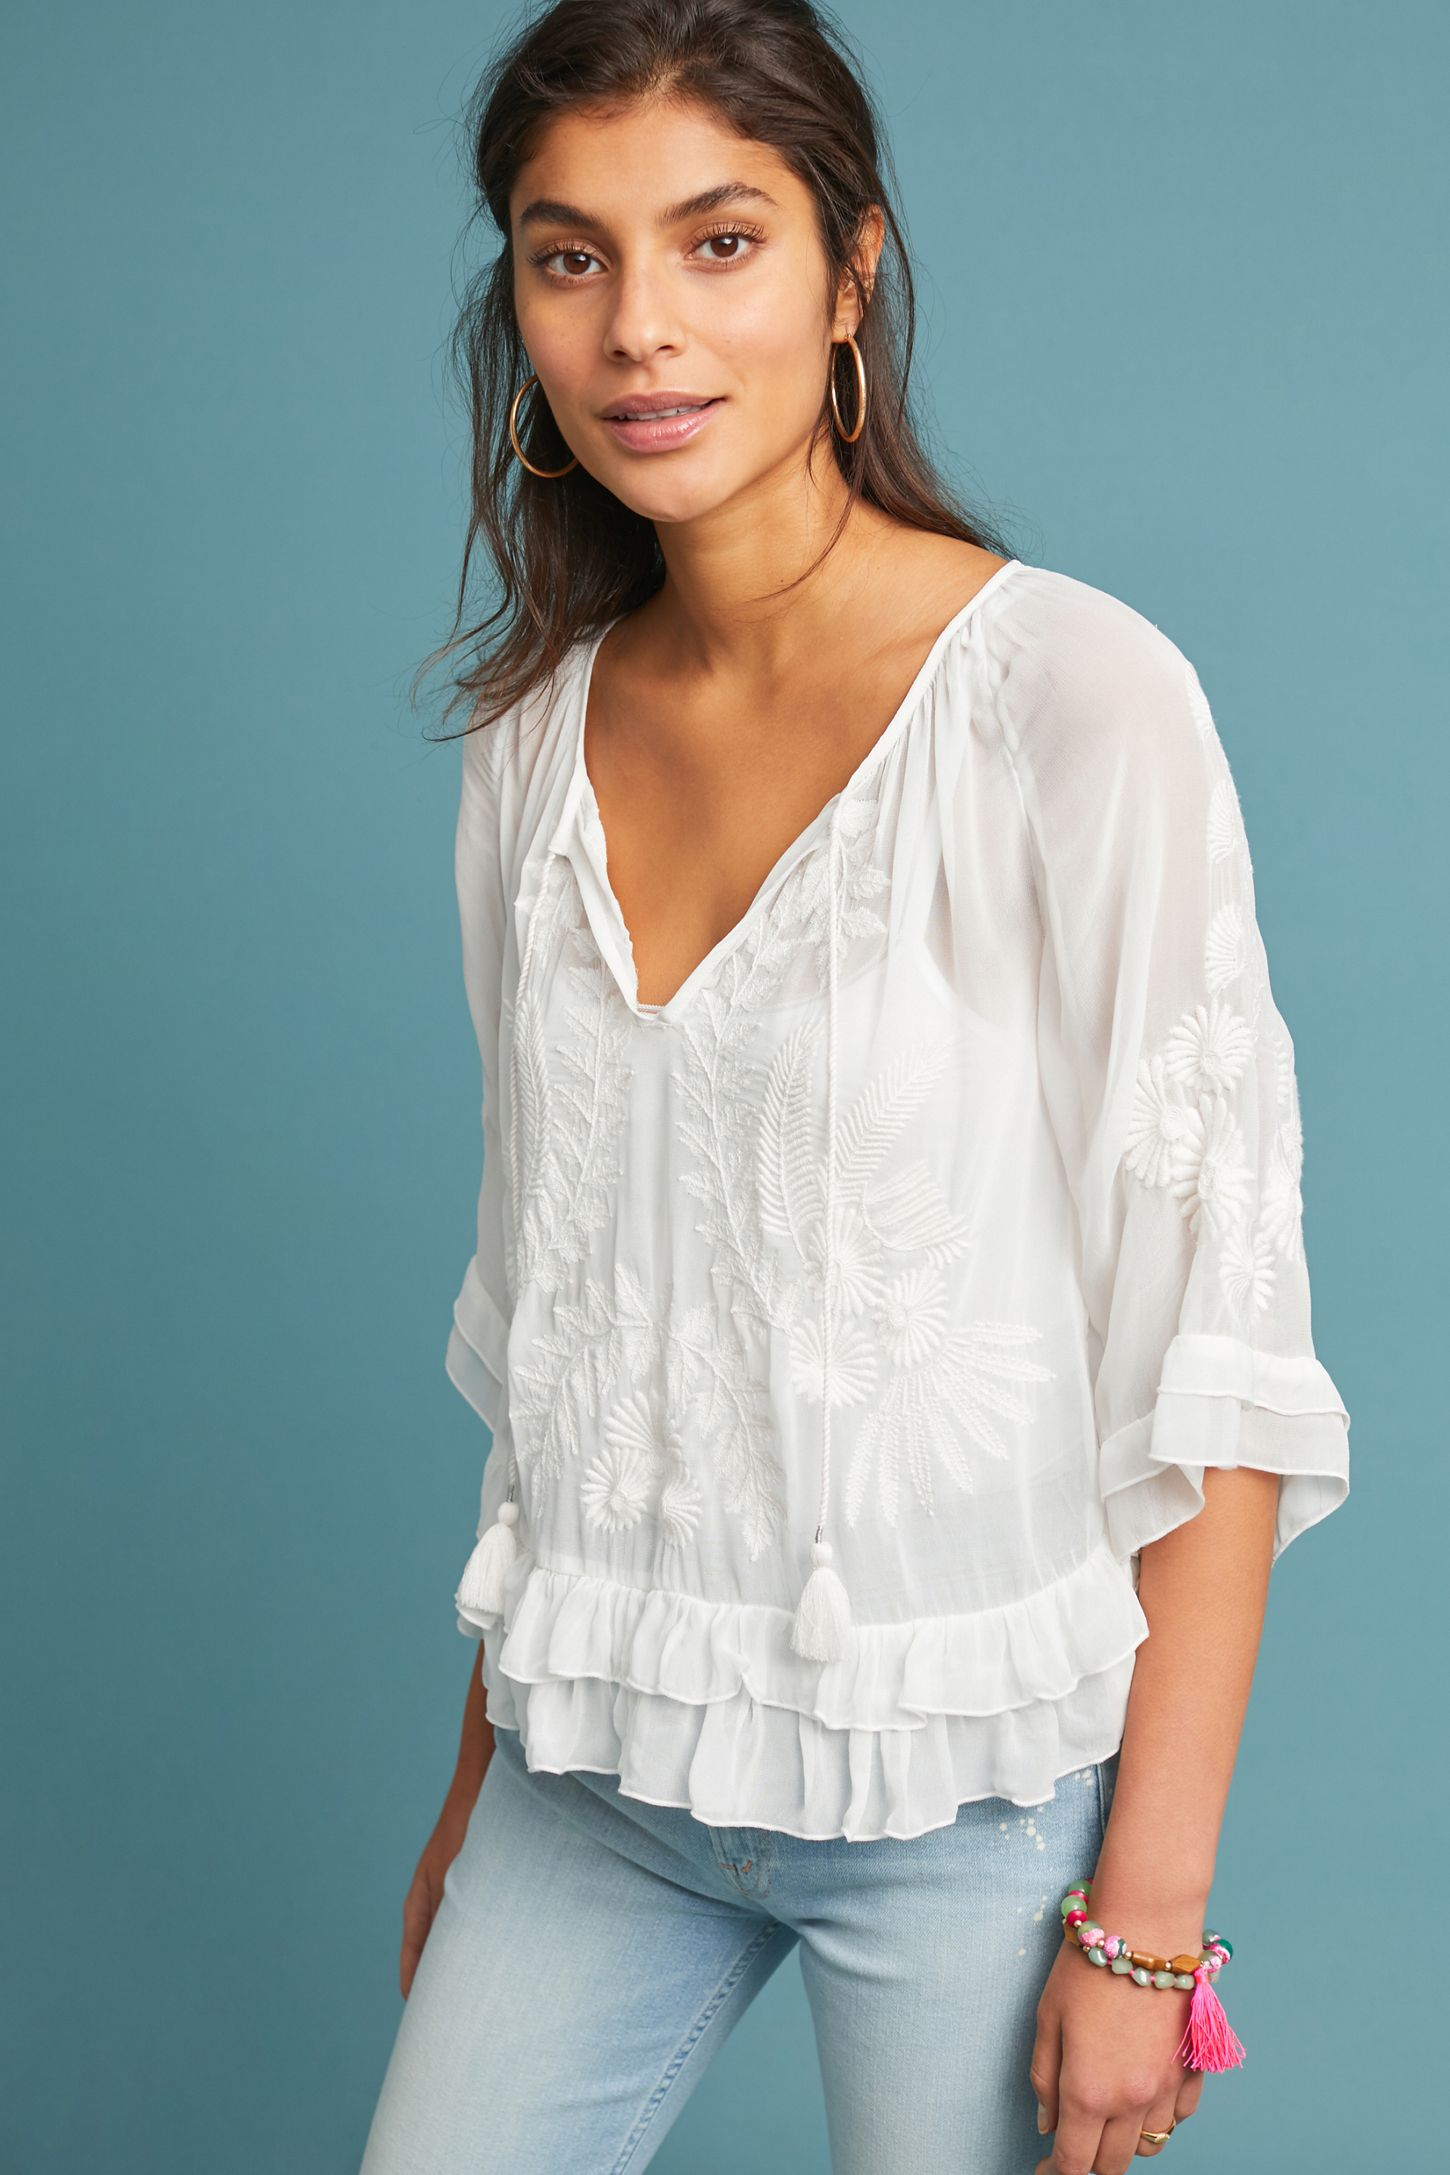 d79804d1cd2ca Ephesus Embroidered Blouse | Anthropologie